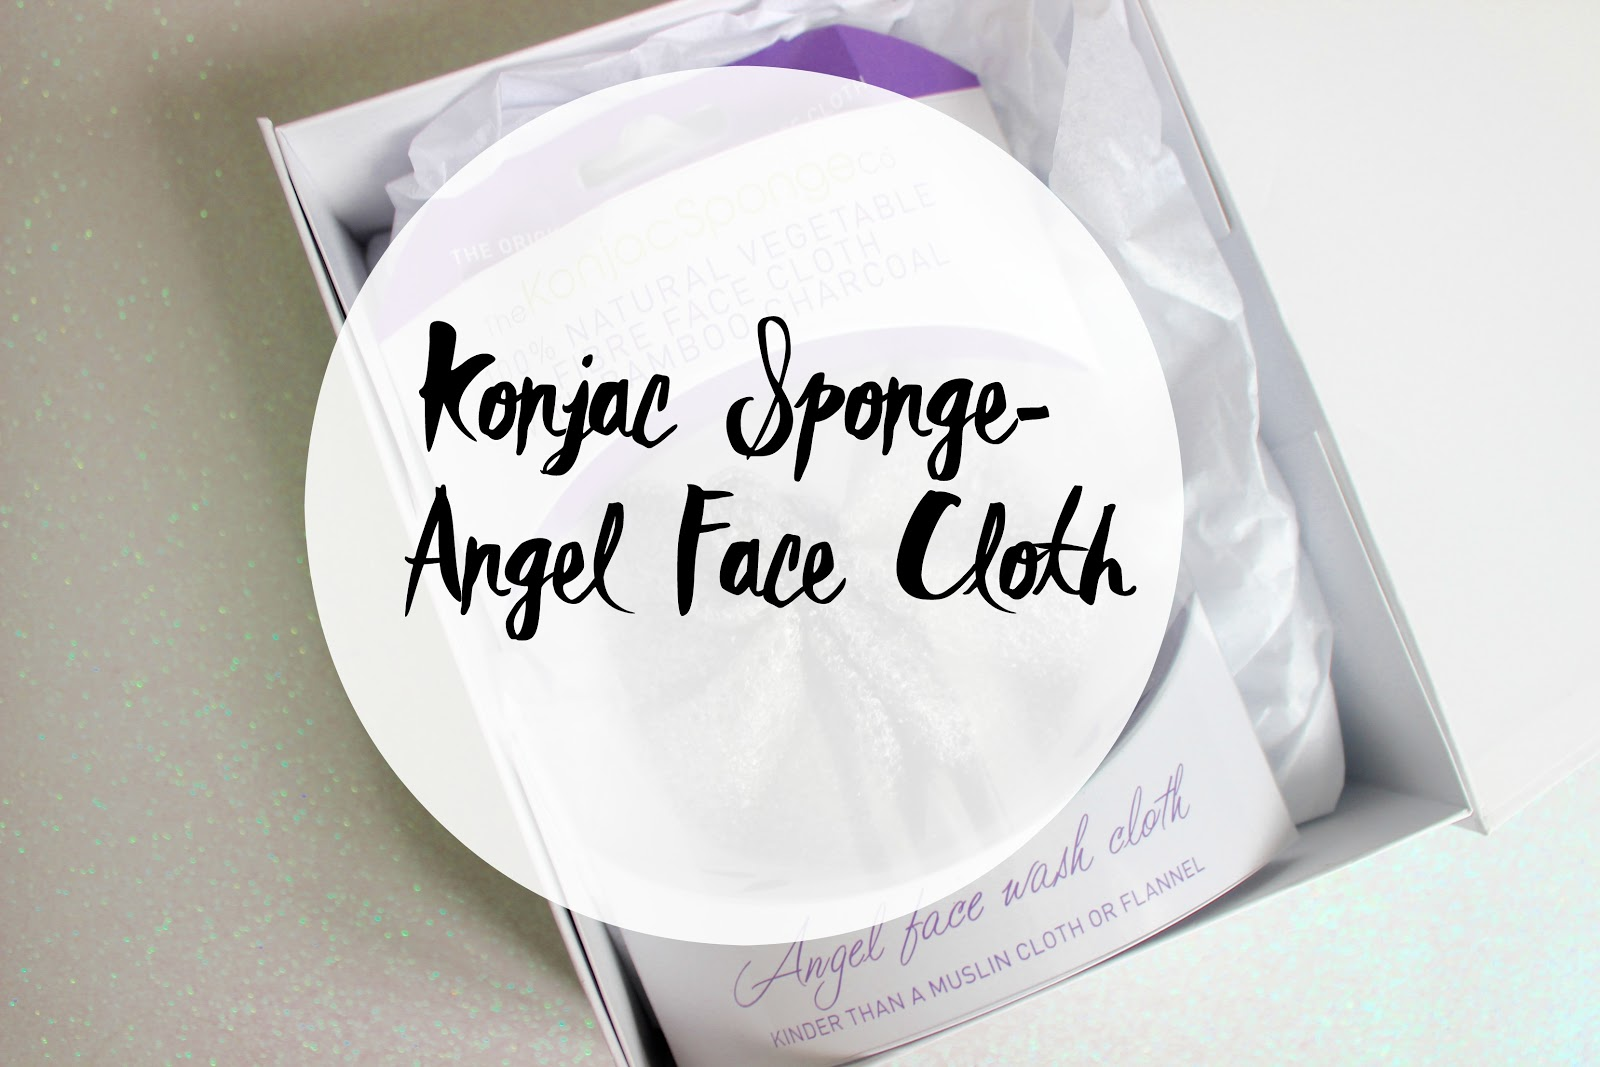 The Konjac Sponge- Angel Face Facial Cloth